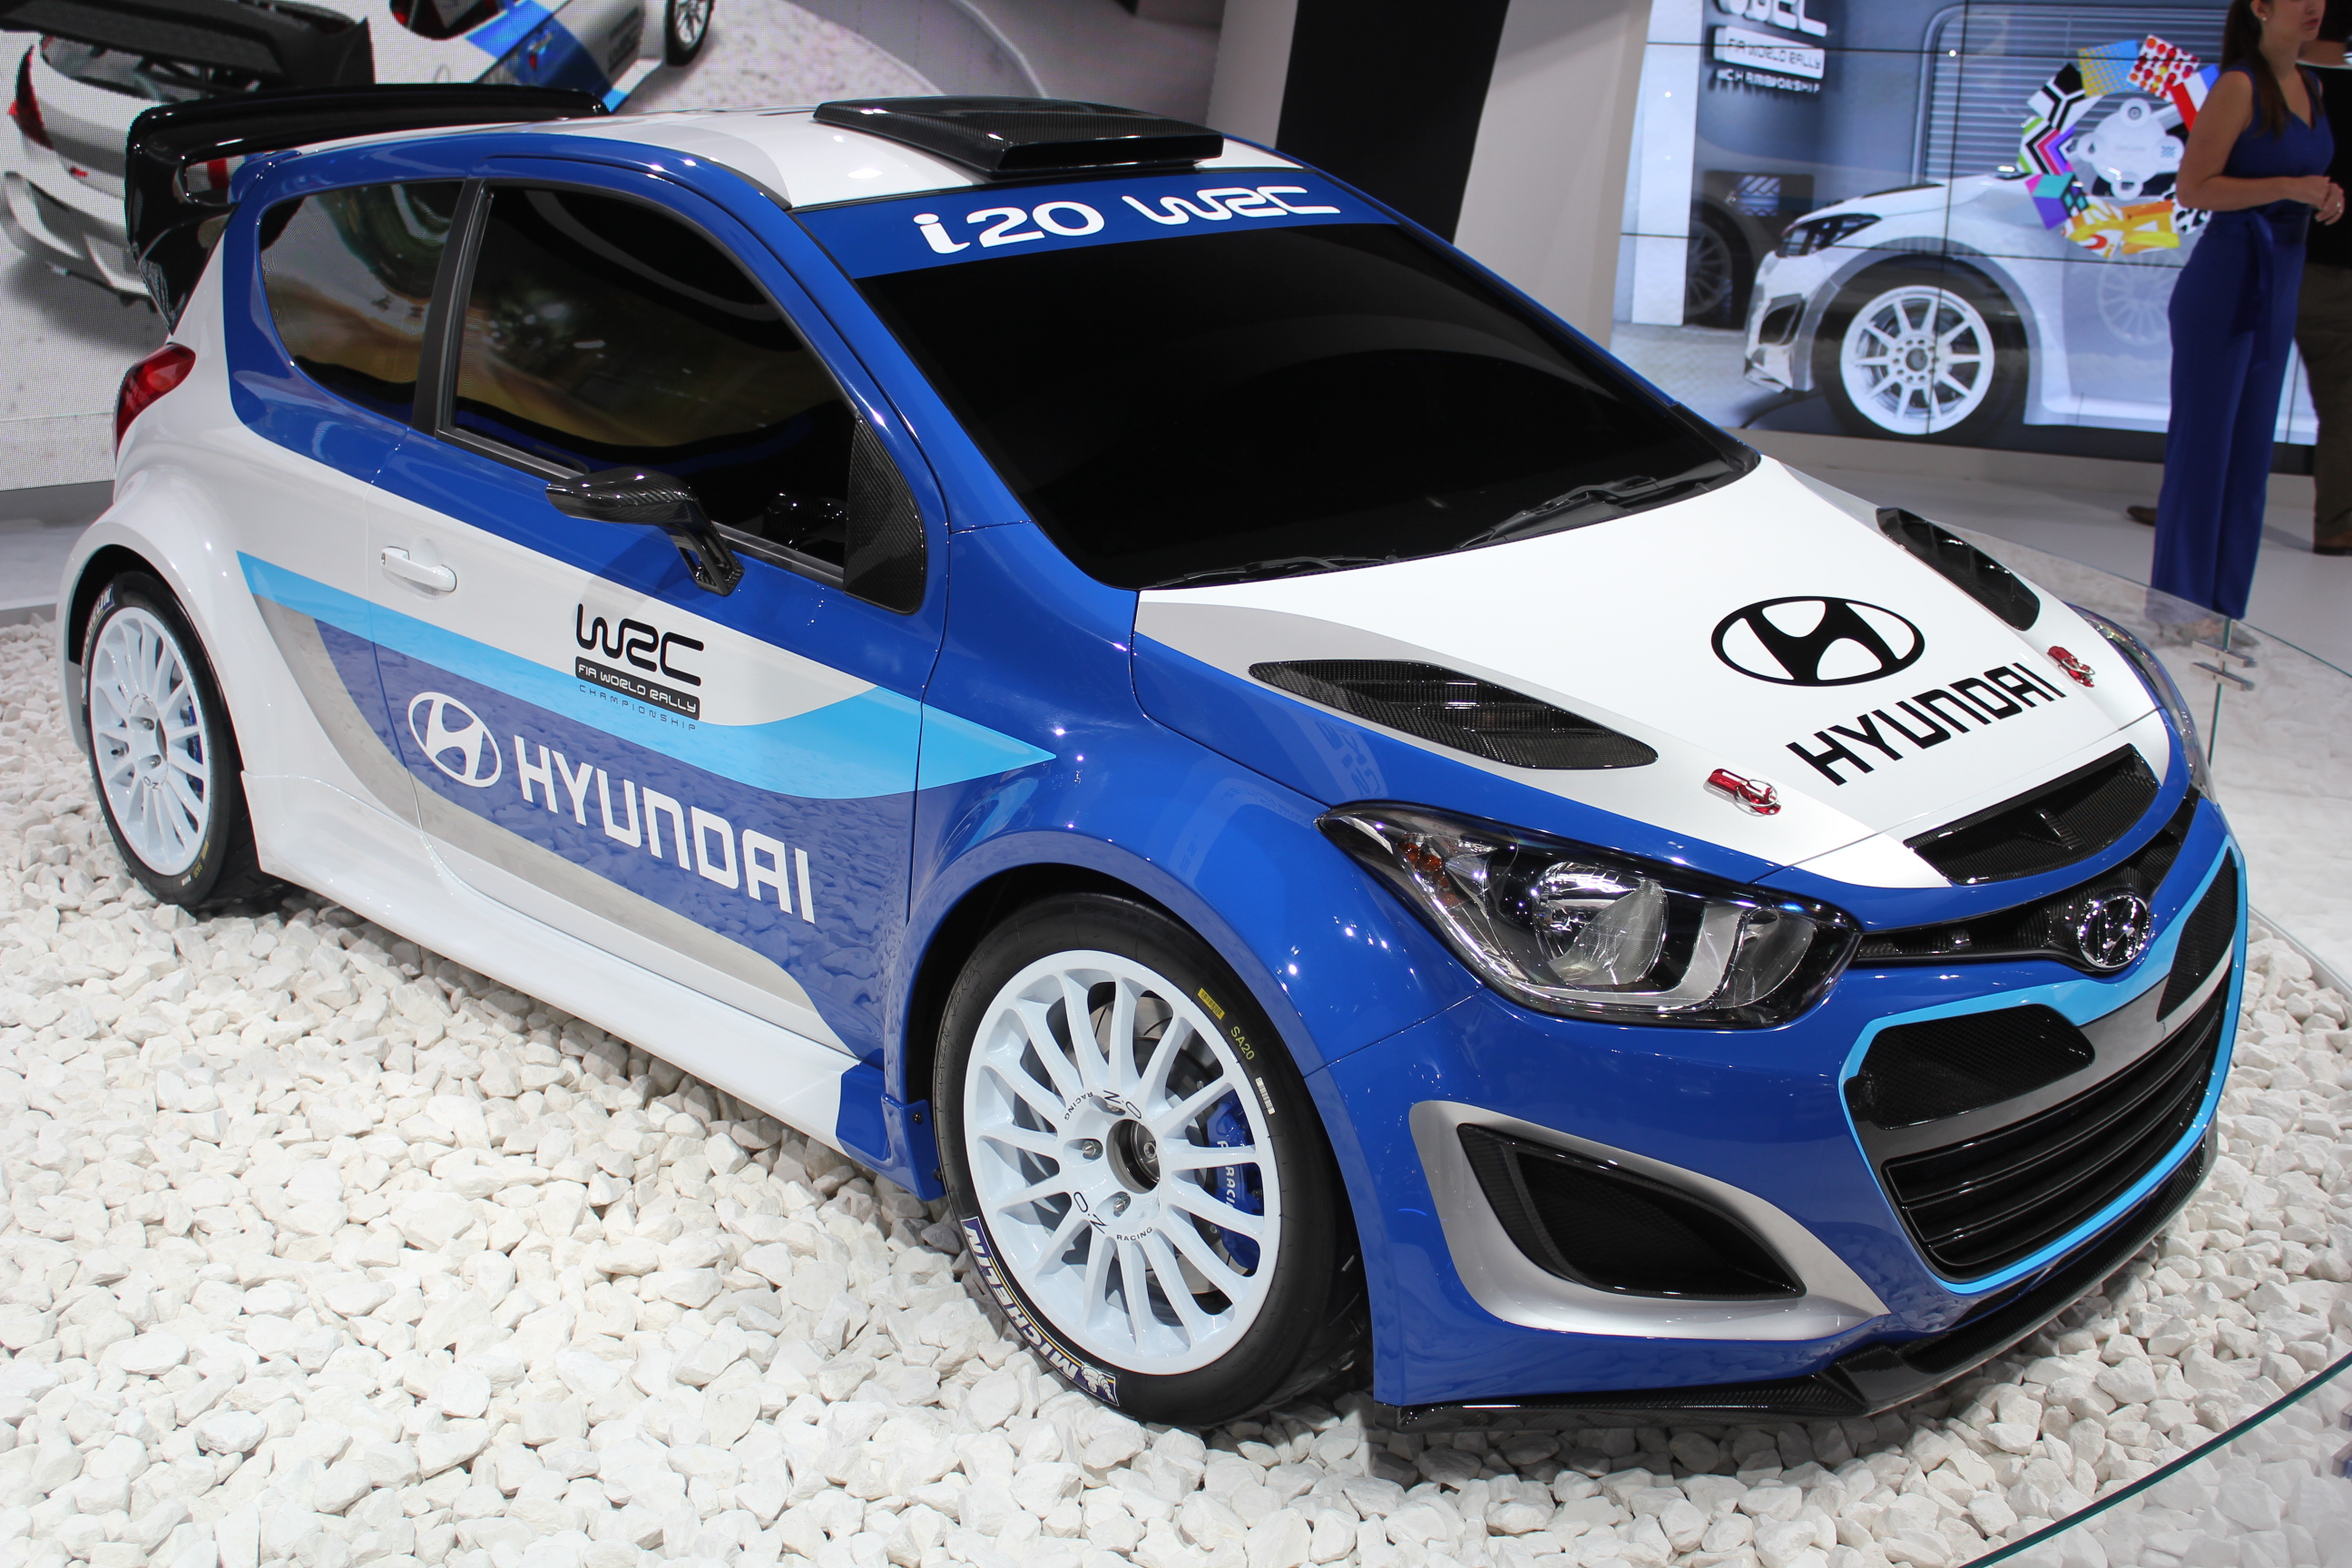 en direct du mondial 2012 hyundai i20 wrc le retour au rallye. Black Bedroom Furniture Sets. Home Design Ideas